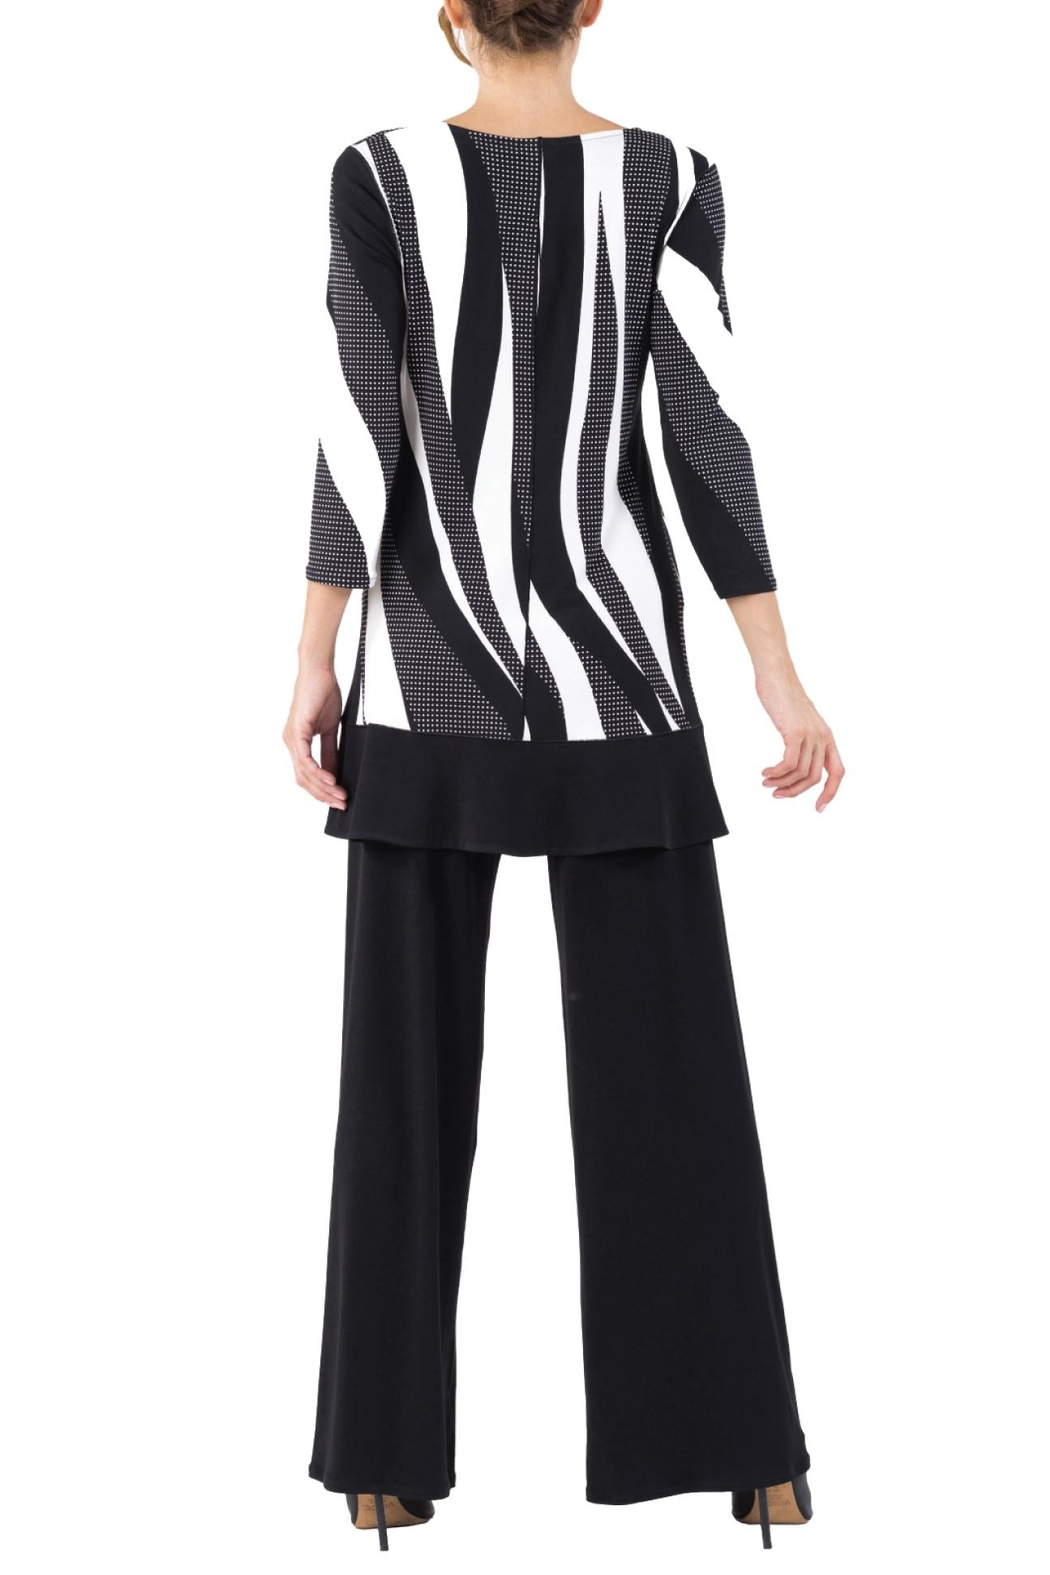 Eva Varro Swing Tunic Top - Side Cropped Image